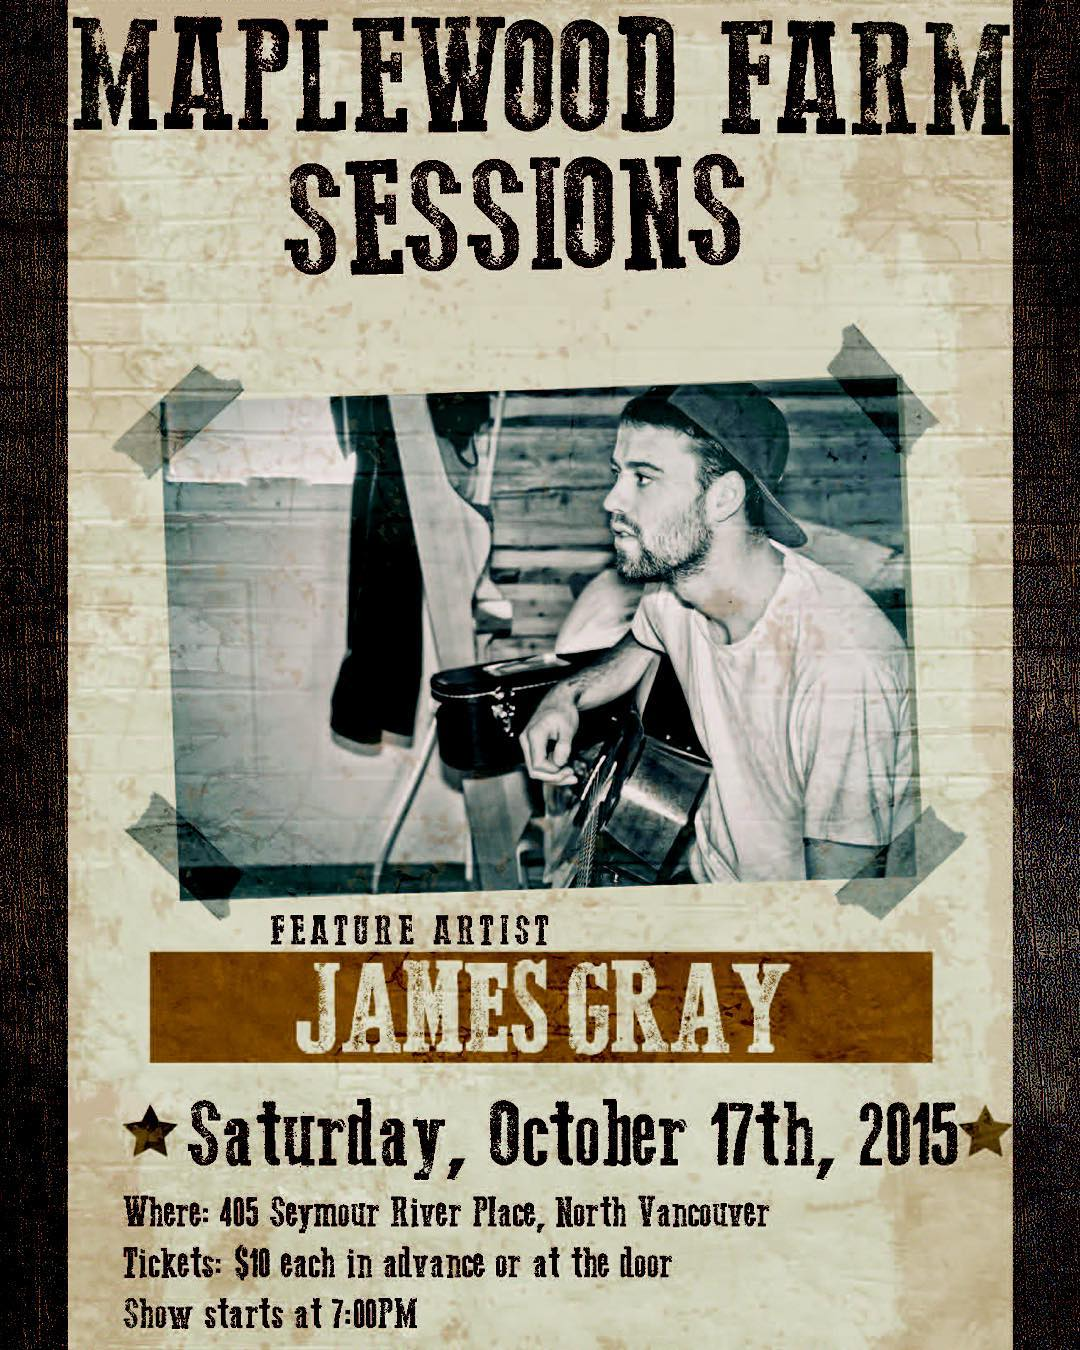 """Instagram: ⭐️TONIGHT!⭐️ Join us for some #livemusic at the Farm! Tickets are $10 at the door.  A singer/ songwriter from Muskoka,Ontario,  Gray has just returned from an extensive tour throughout Canada and Switzerland to promote his sophomore album """"Bigger Things"""". Most notably, James was the musical guest at the TED talks held on the west coast of Canada and most recently his songs have received various plays on CBC radio 1 programs,including Ontario Morning with Wei Chen. #northvancouver #maplewoodfarm #tedtalks #cbc #radio1 #acoustic #westcoasttour2015 #indie #northshore #events #tonight"""